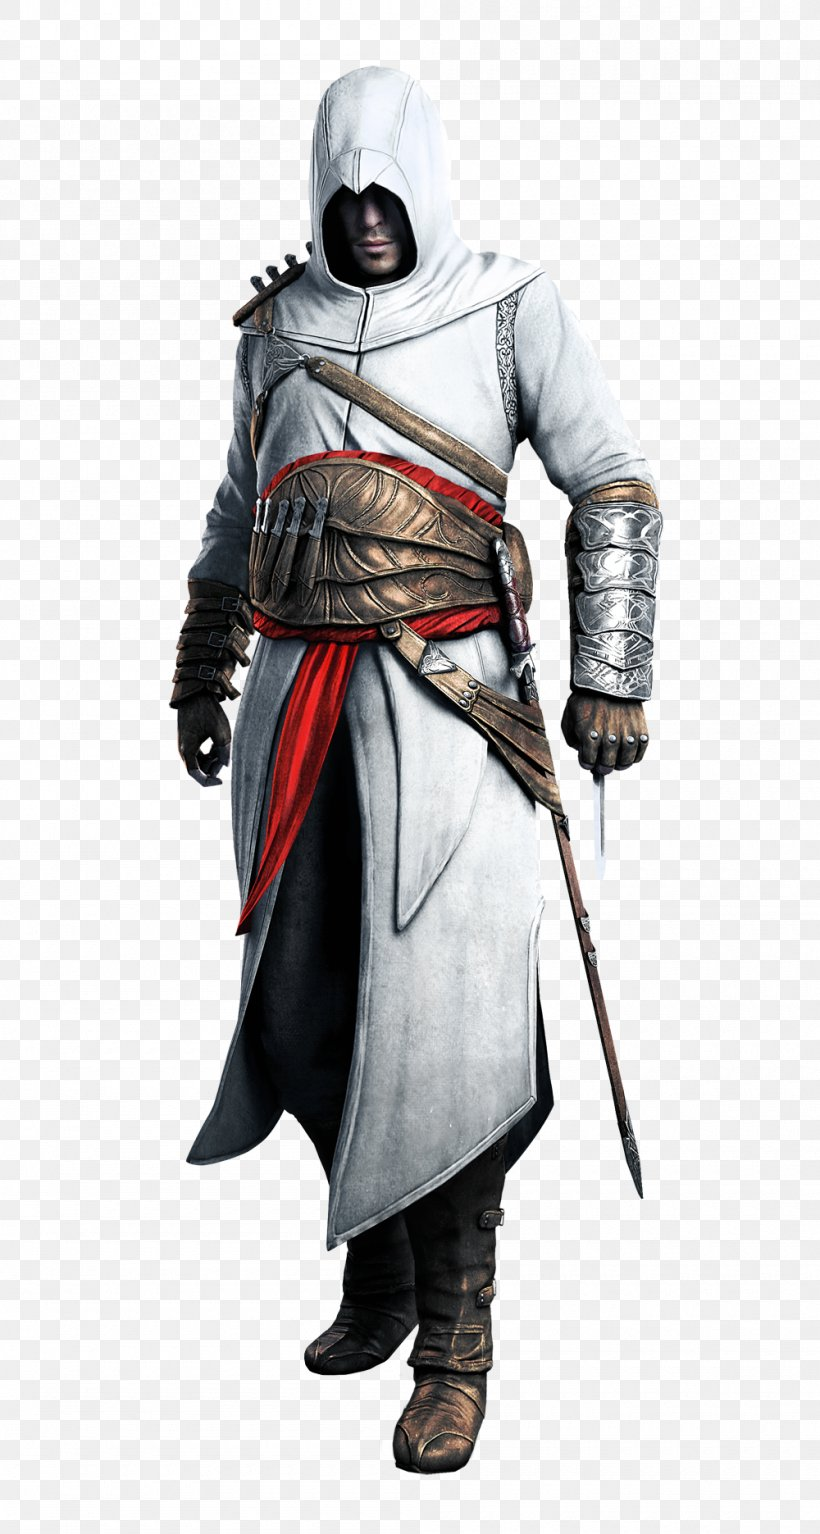 Assassins Creed: Altaxefrs Chronicles Assassins Creed: Revelations Assassins Creed III, PNG, 1000x1871px, Assassins Creed, Altaxefr Ibnlaahad, Armour, Assassins, Assassins Creed Brotherhood Download Free